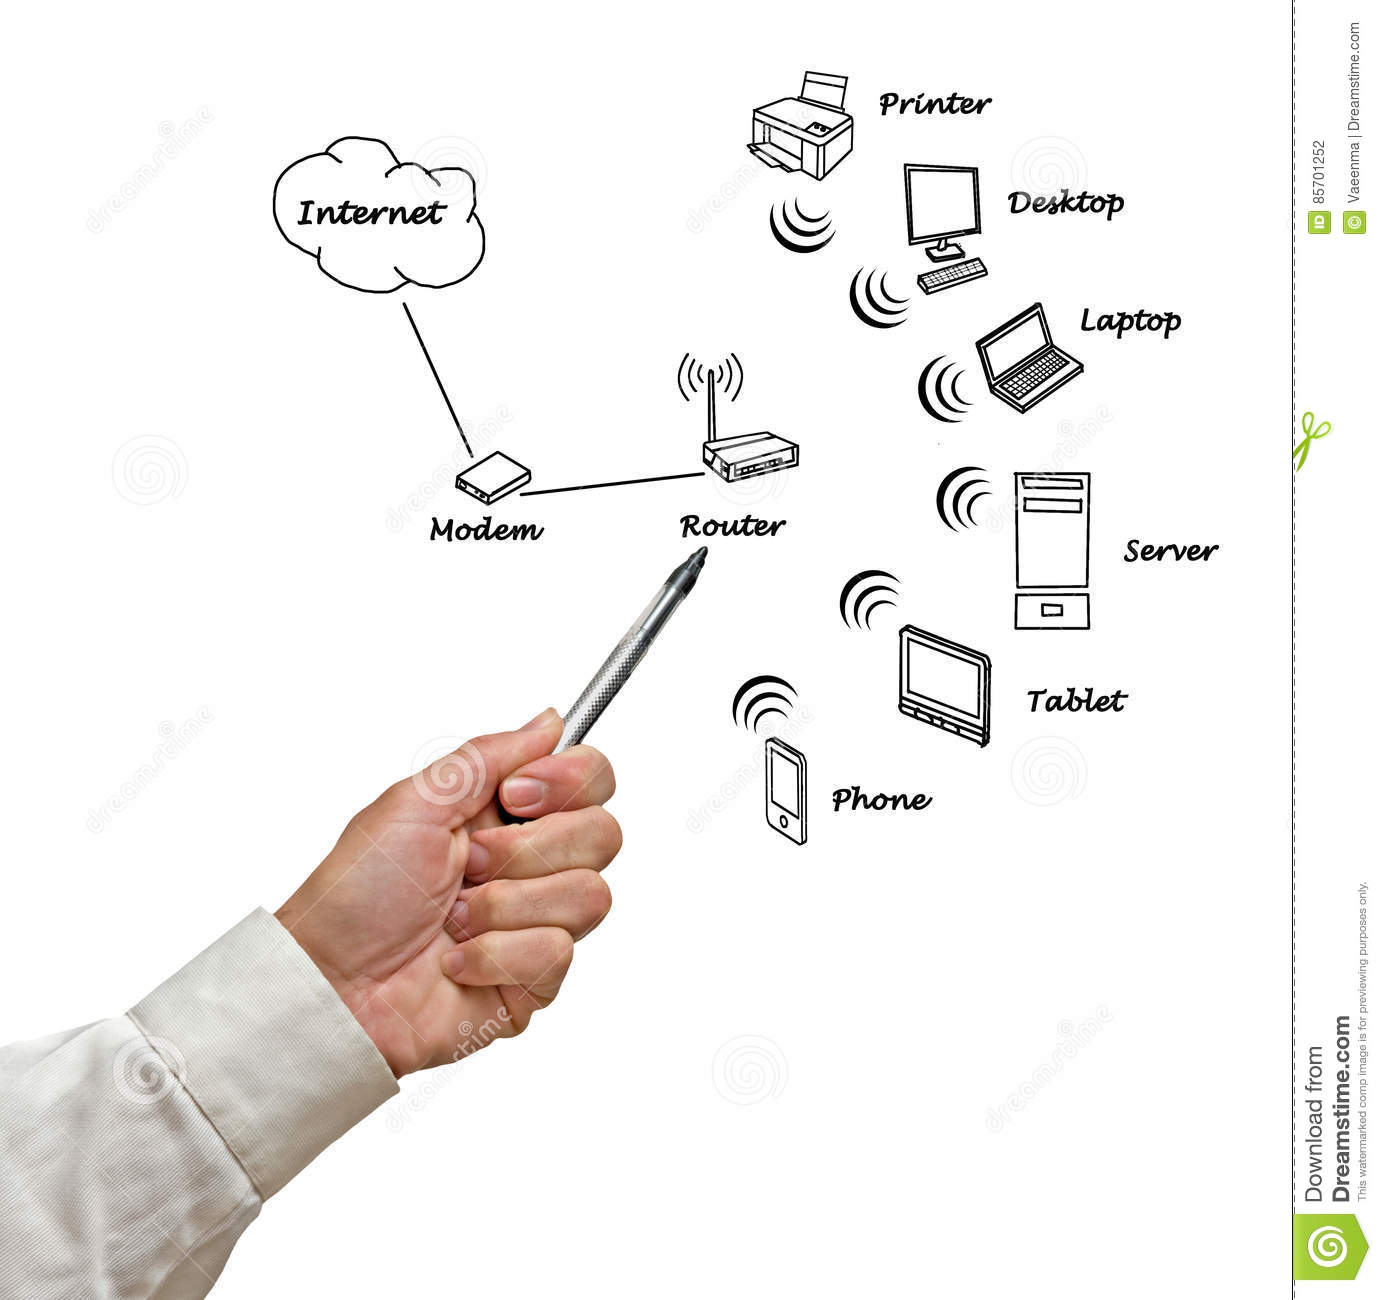 Home network diagram stock photo  Image of drawing, network